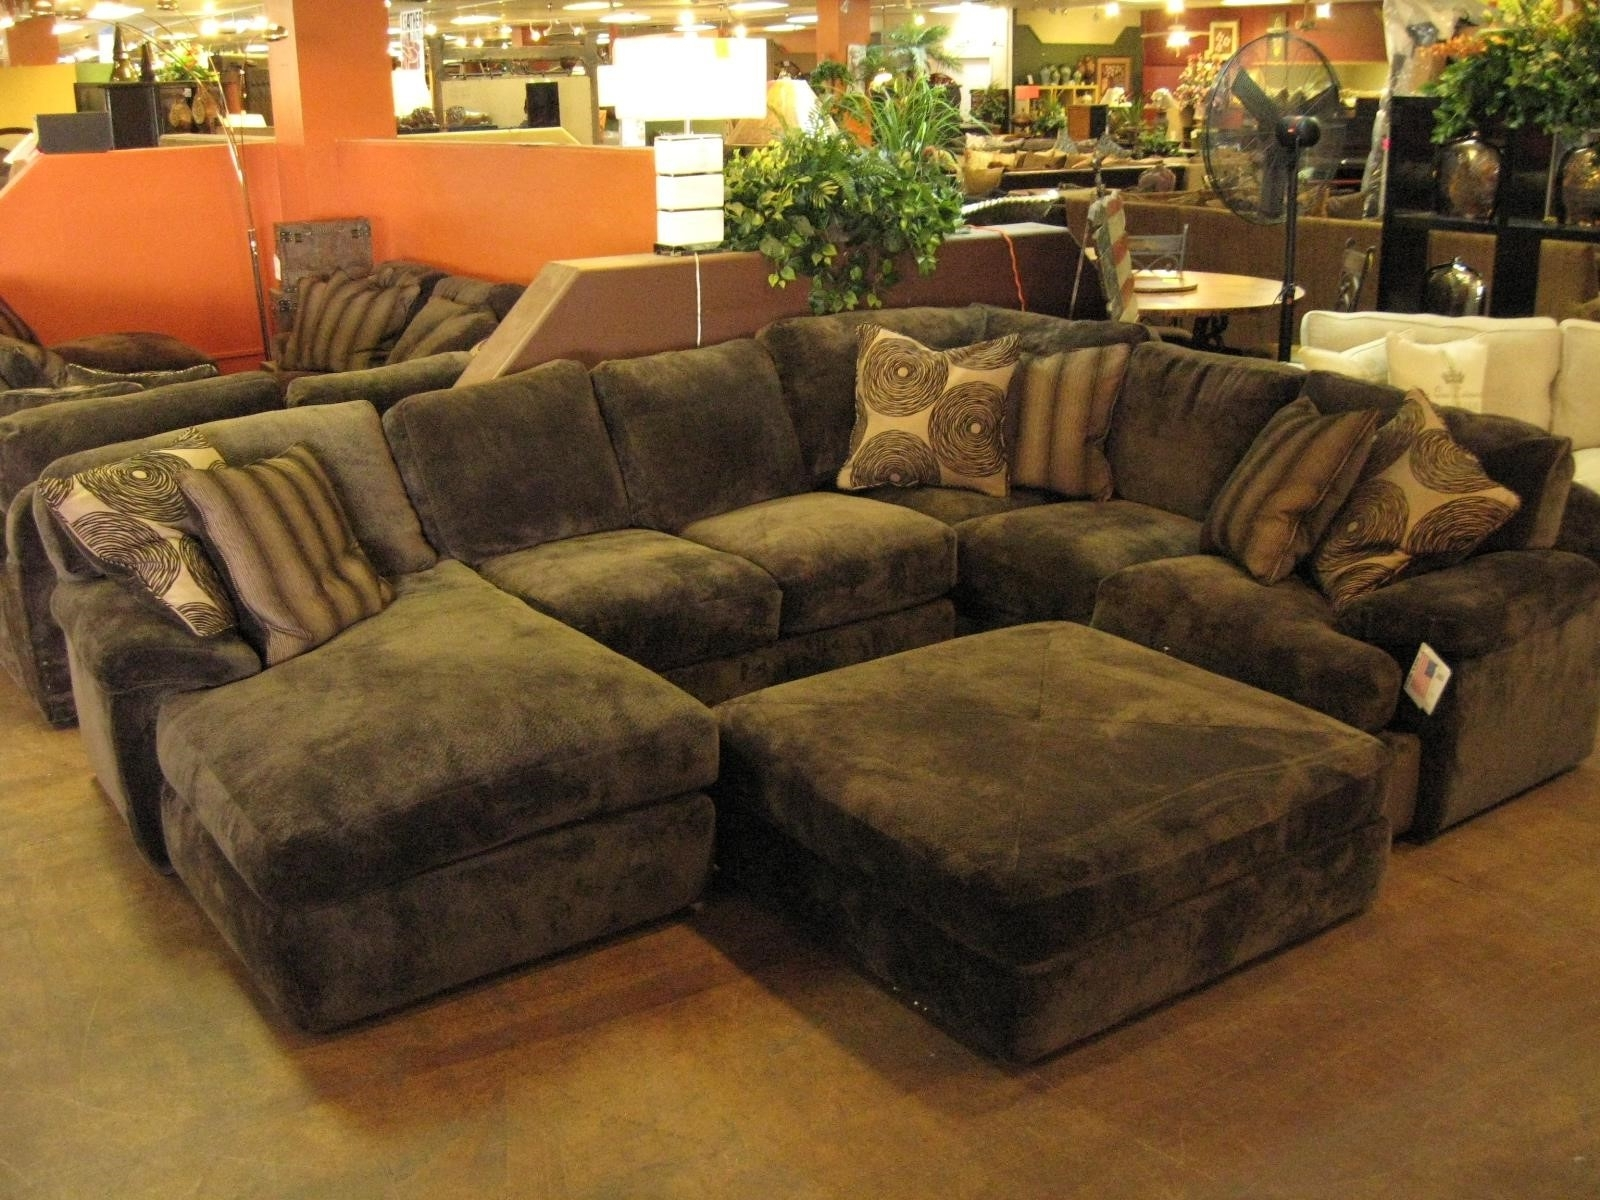 Trendy Ontario Canada Sectional Sofas Within Sofa : Fascinating Large Sectional Sofa Classy Sofas On Home (View 15 of 20)